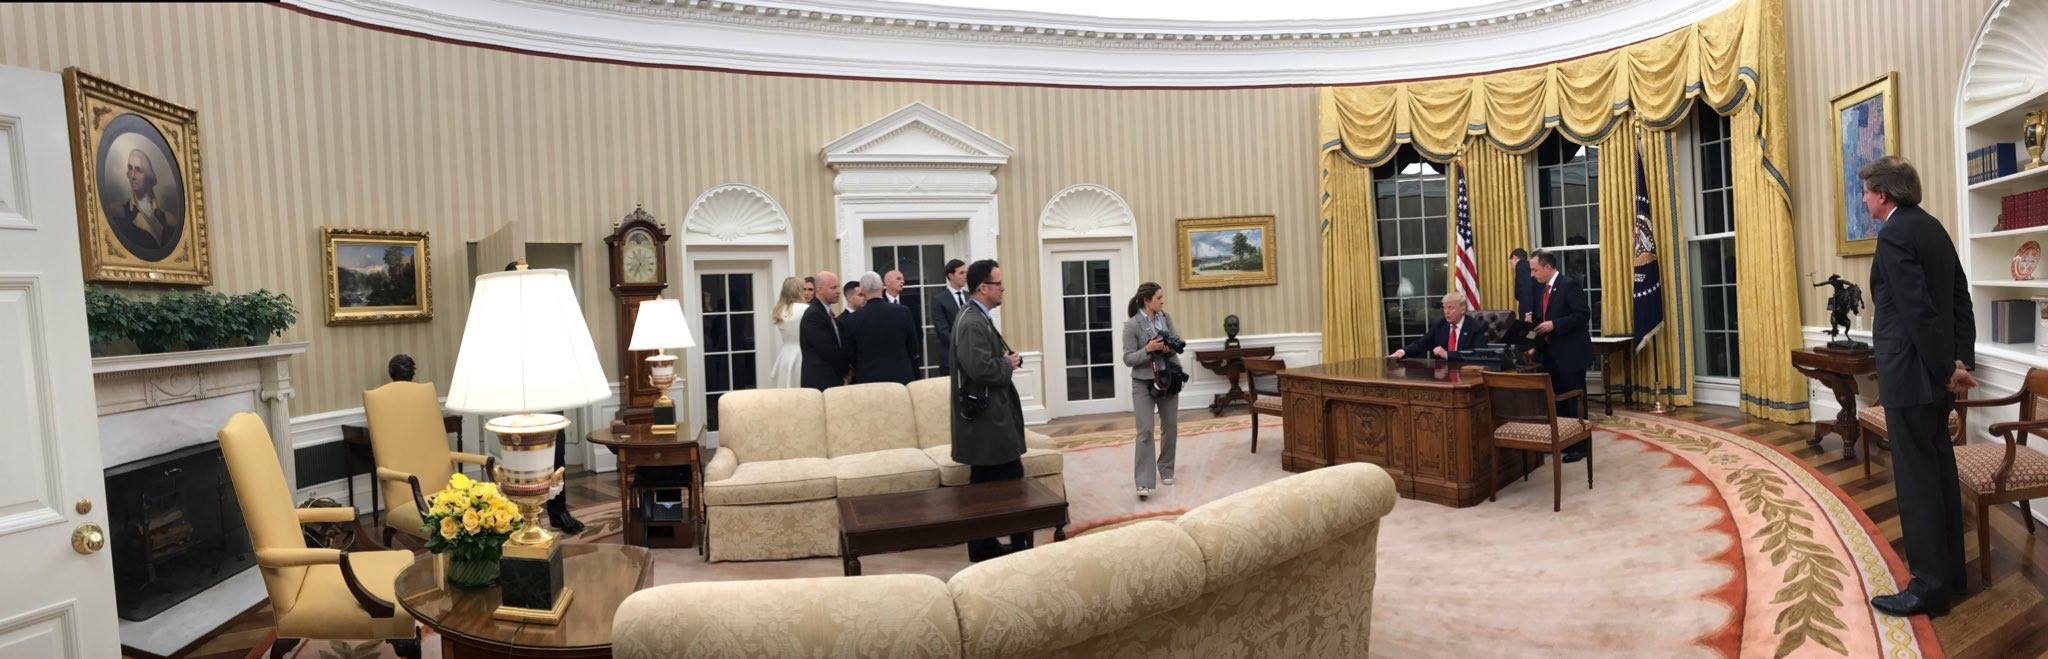 oval office picture. File:Trump Oval Office Panorama.jpg Picture